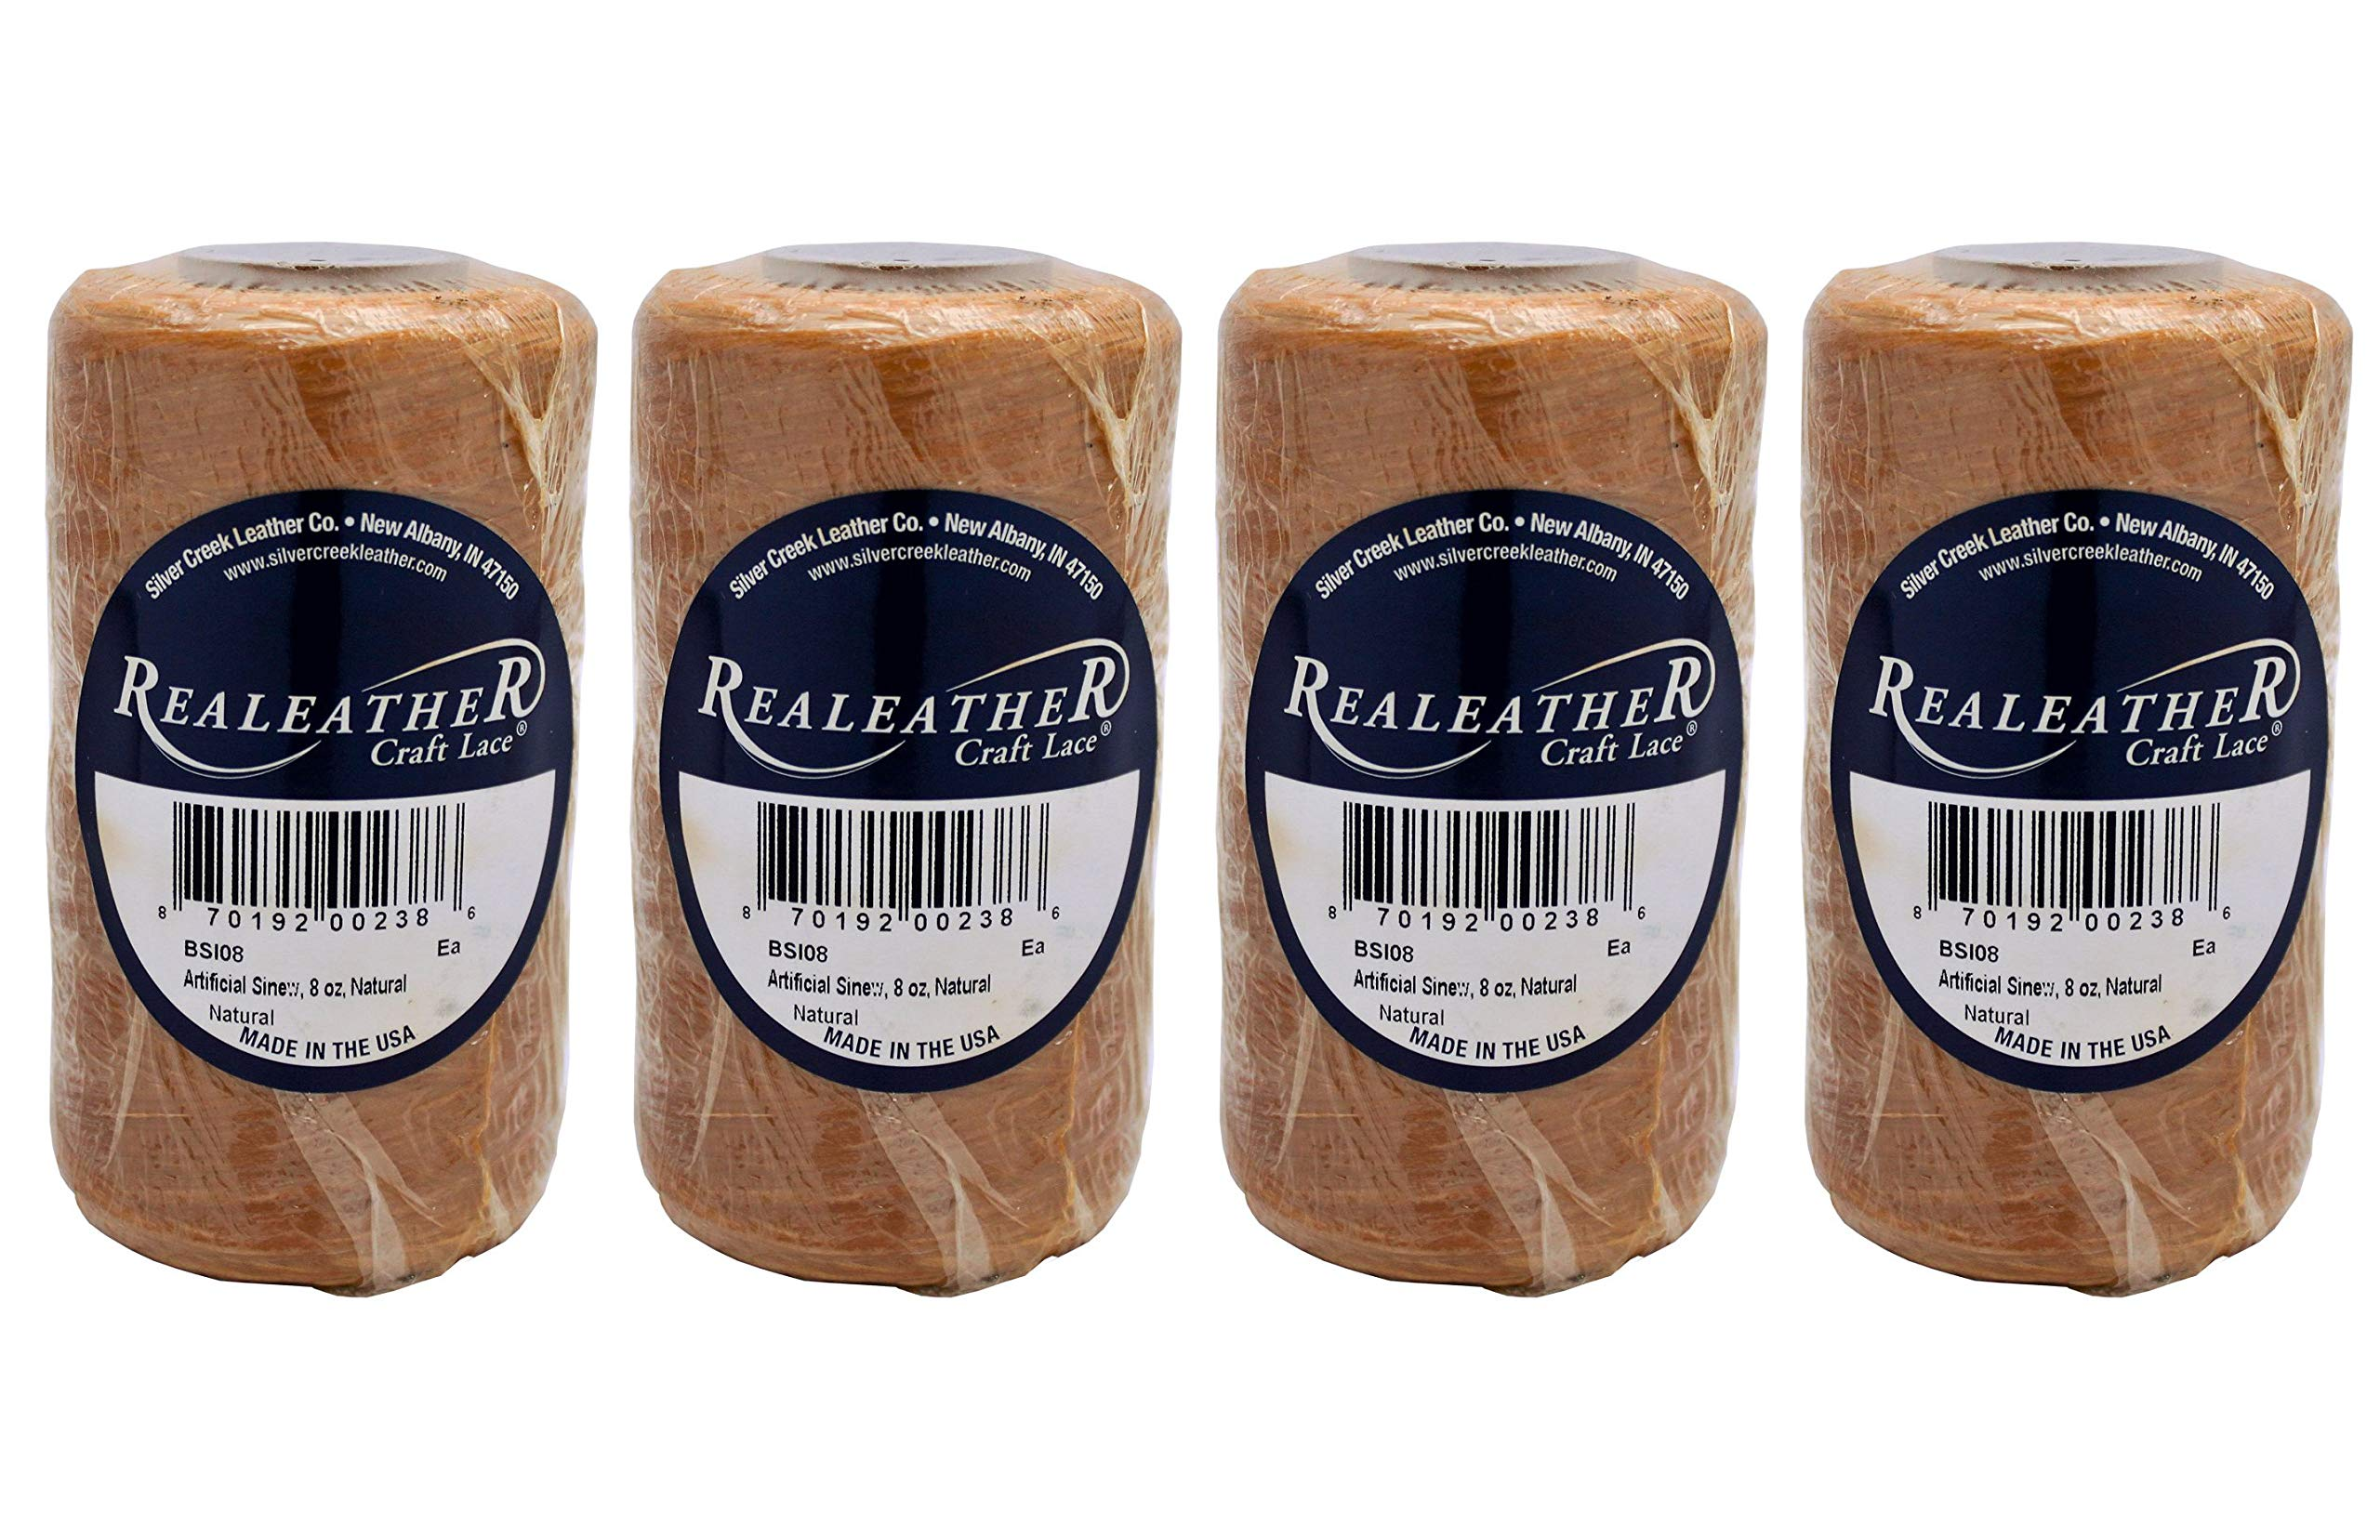 Realeather Artificial Sinew, 8 oz, Natural (Fоur Paсk) by Realeather